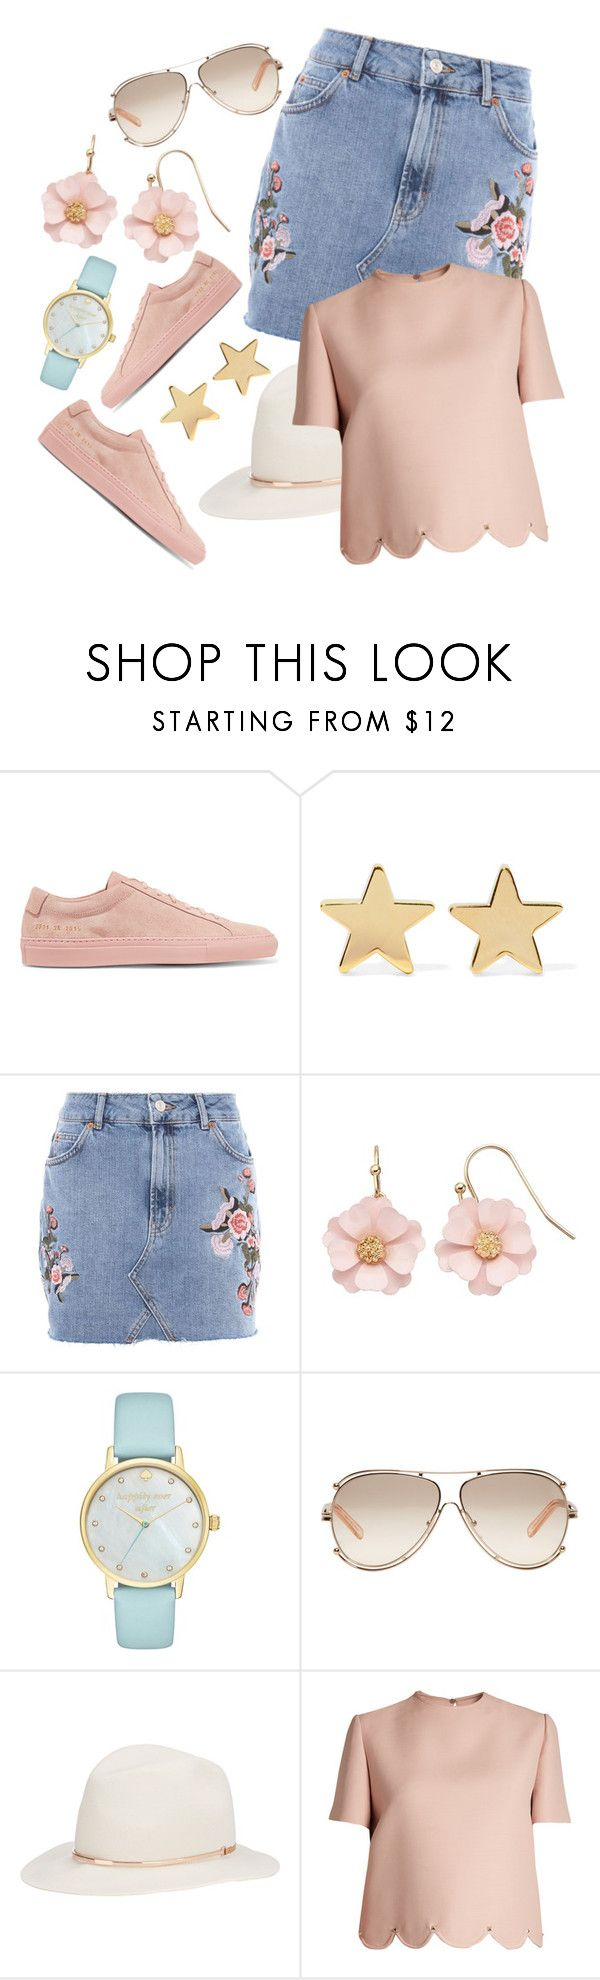 """fully accesorized"" by amalia-paraschiv ❤ liked on Polyvore featuring Common Projects, Jennifer Meyer Jewelry, Topshop, LC Lauren Conrad, Kate Spade, Chloé, Janessa Leone and Valentino"